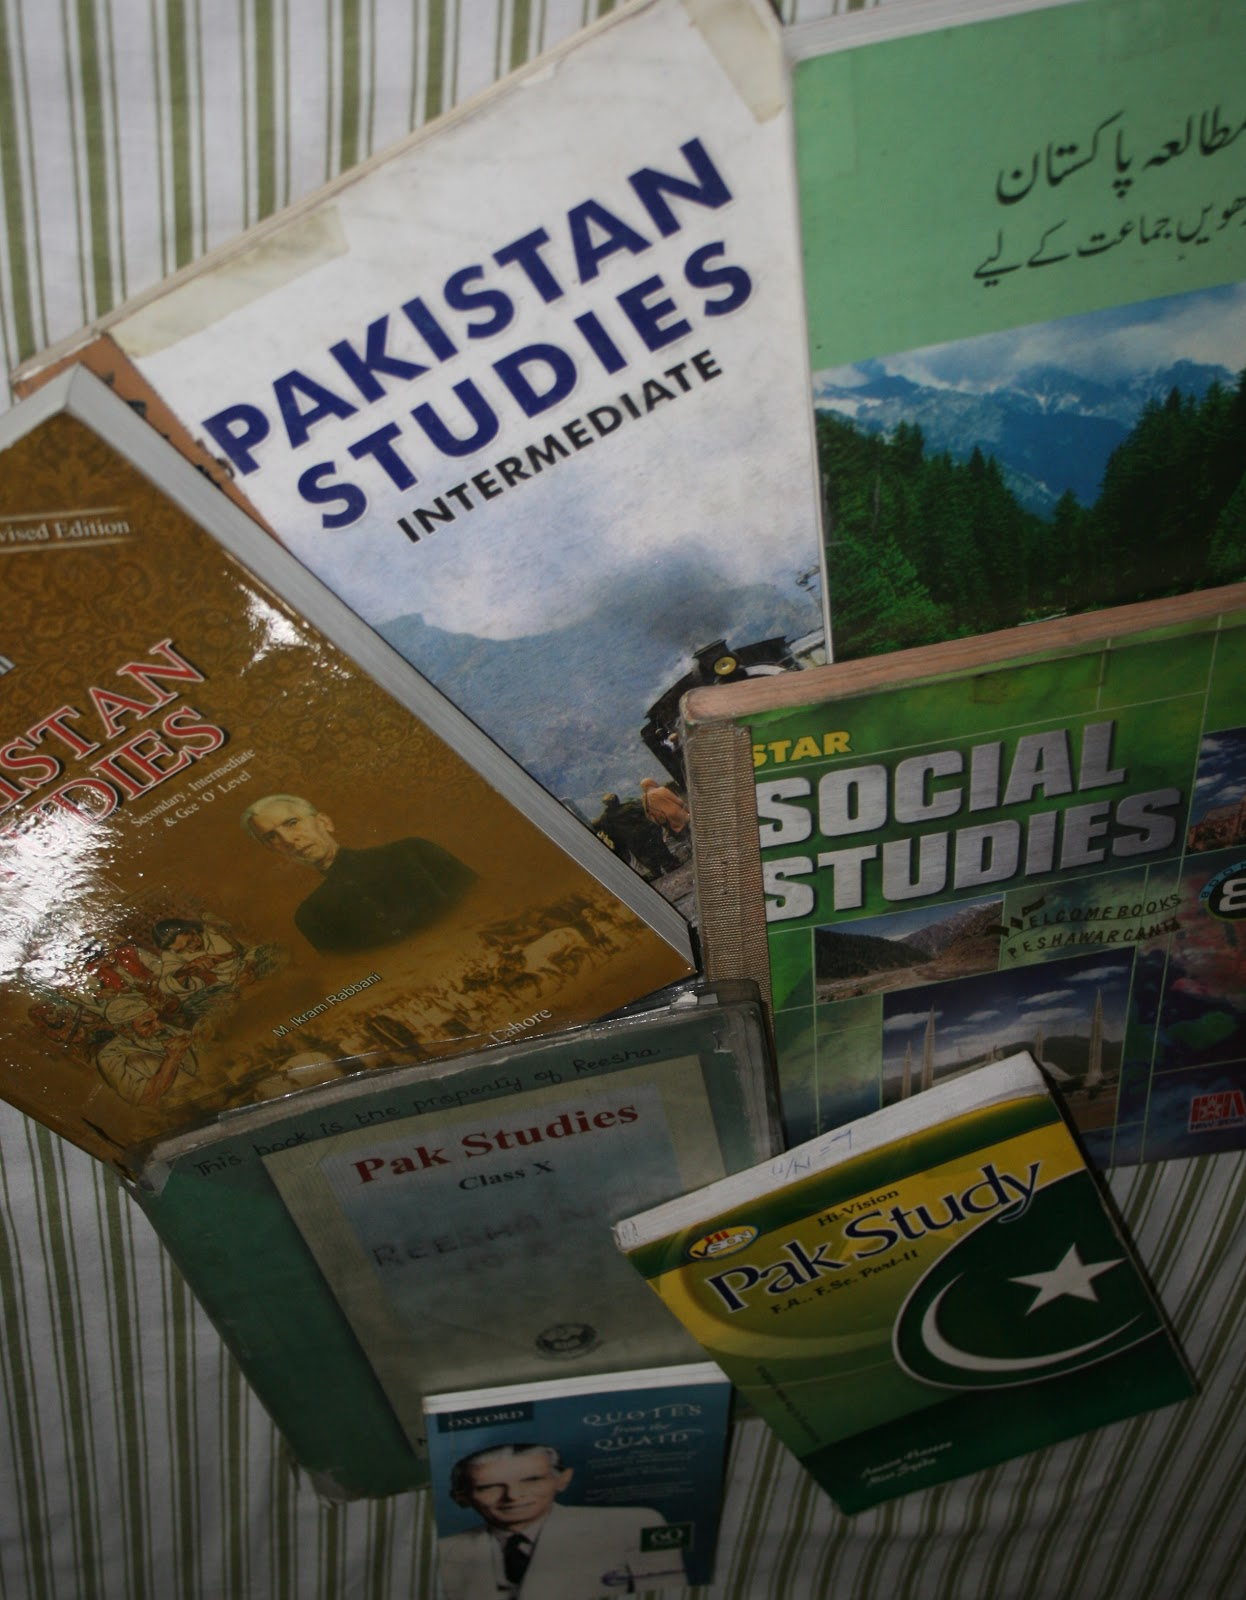 Isolated System: Pakistan Studies in English For Second Year